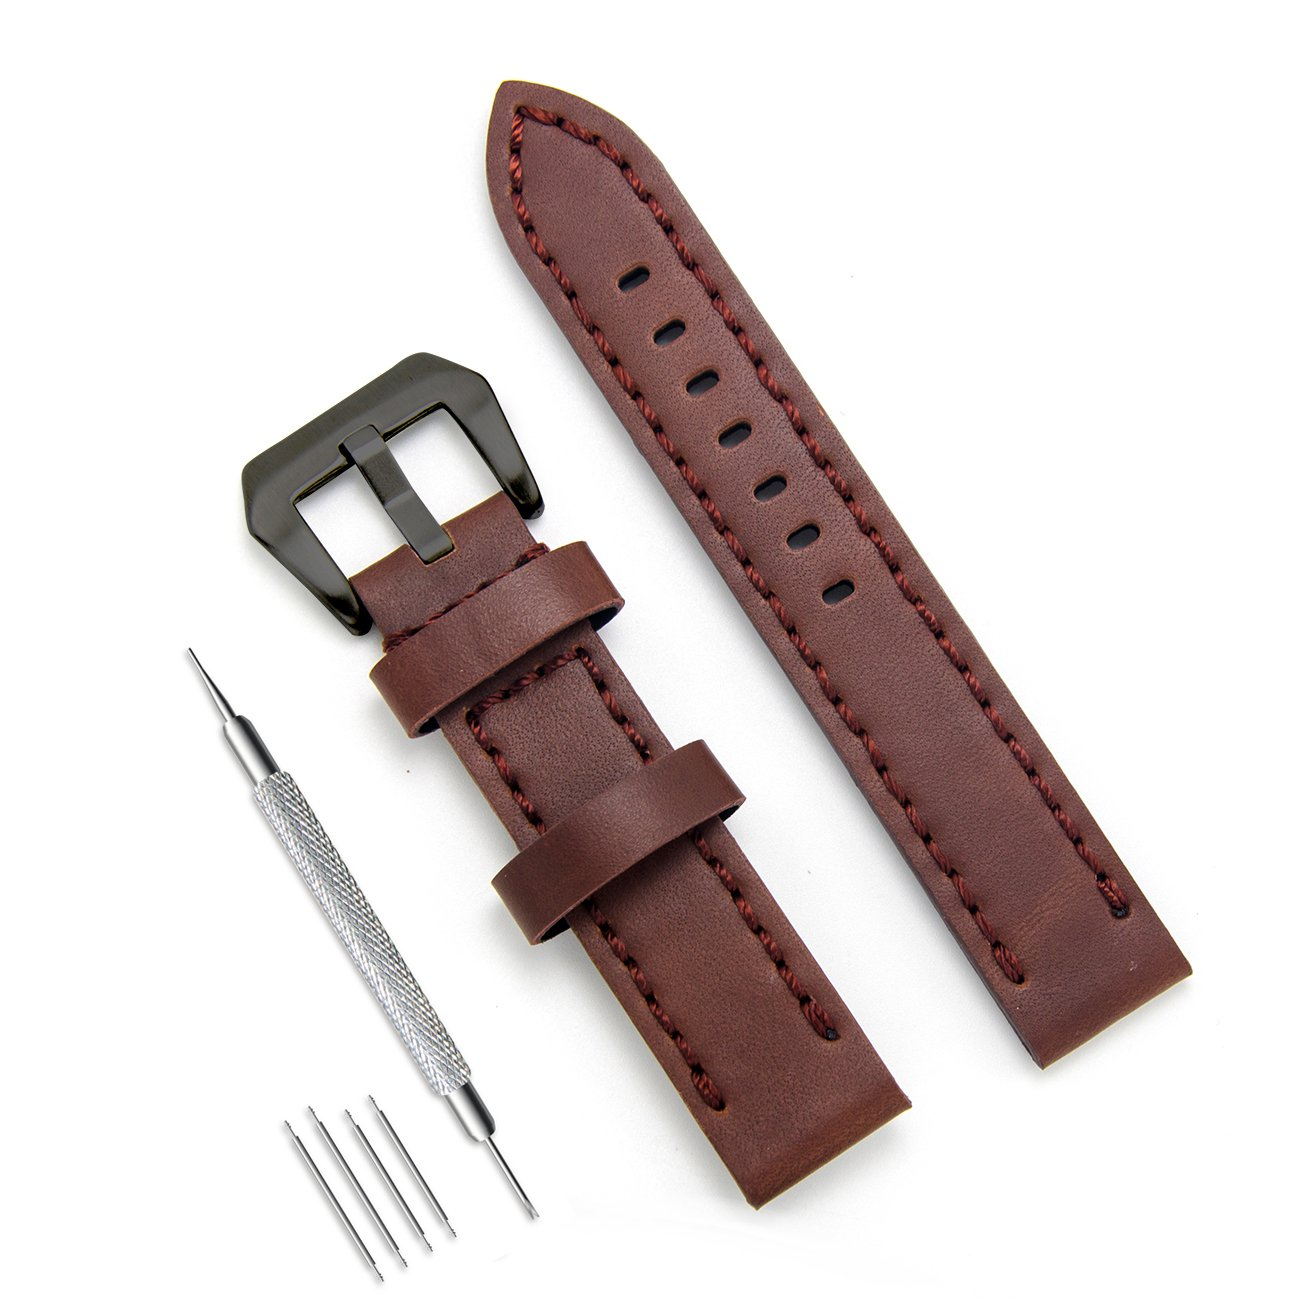 MEGALITH Genuine Leather Watch Band 20mm 22mm 24mm Leather Watch Strap Top Calf Grain Watch Bands for Men